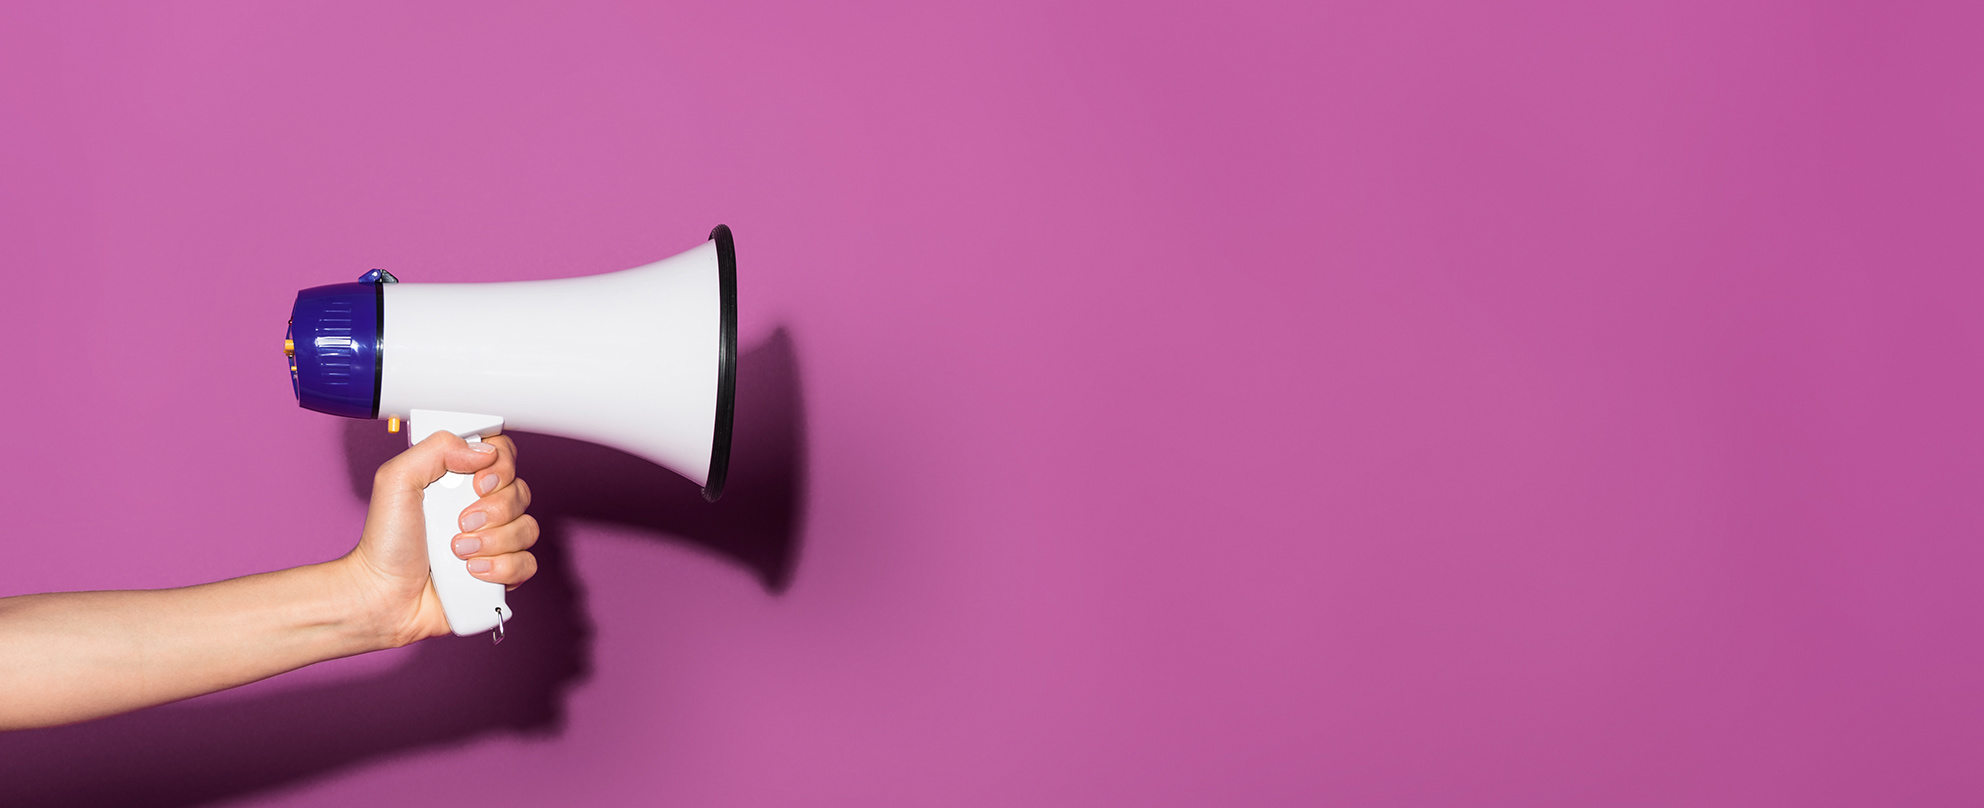 Photo of a woman's hand holding a white megaphone against a pink background